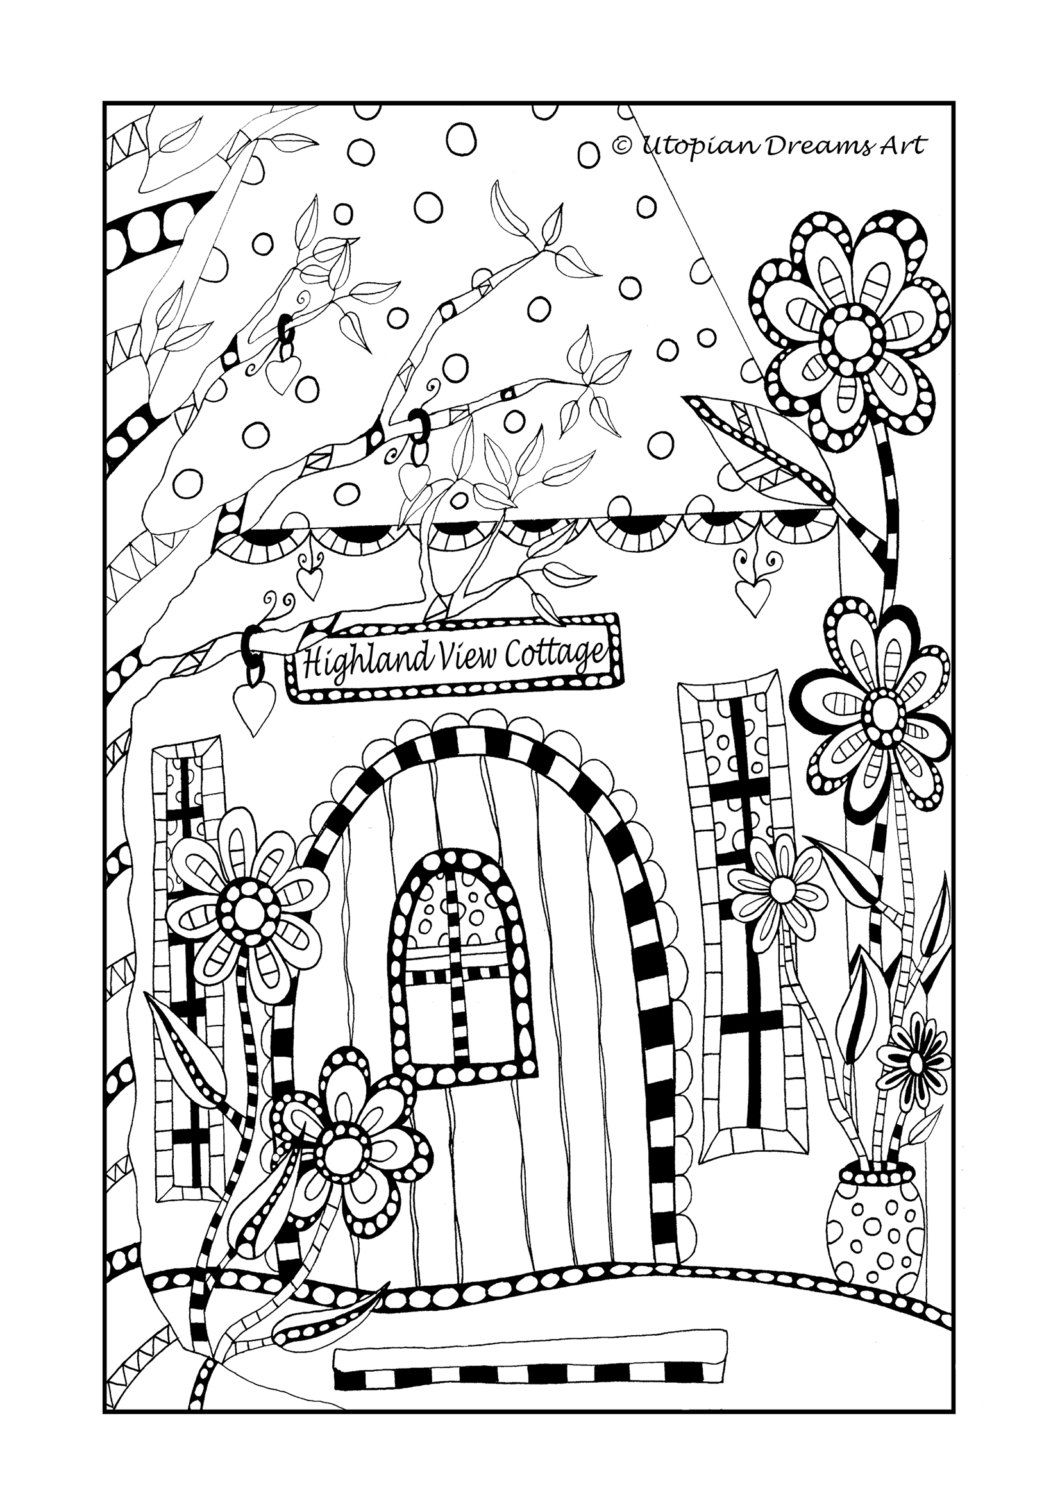 Funky House Colouring Page Whimsical House Hand Drawn